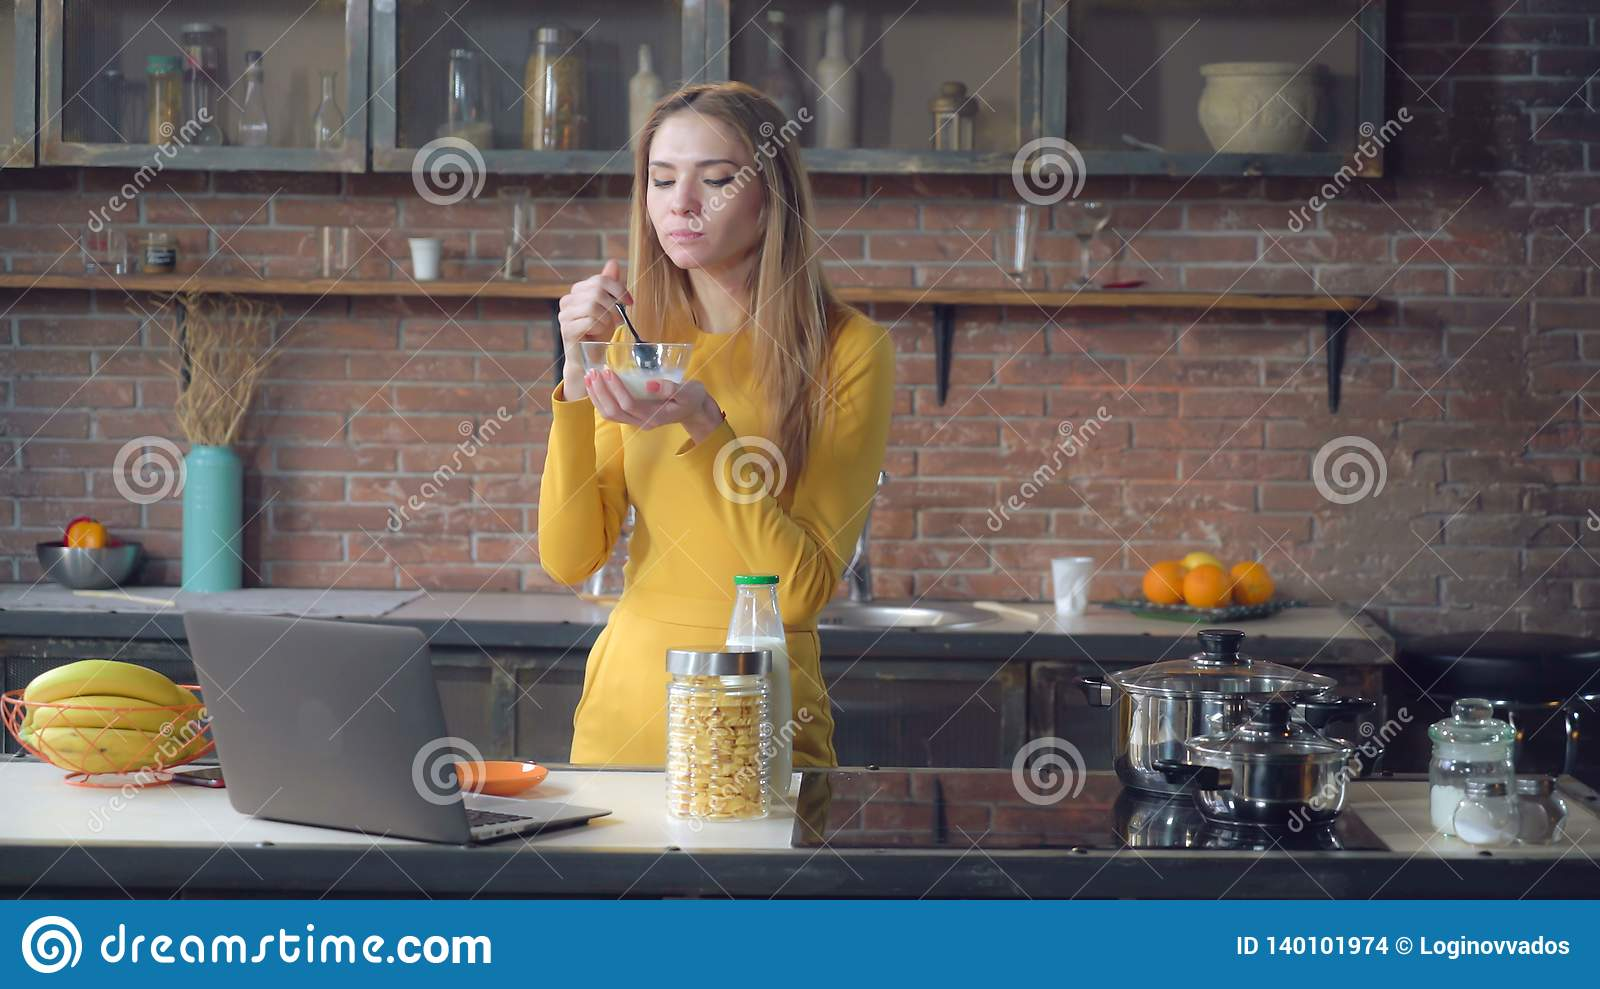 Lady eating in loft apartment with happy smile.